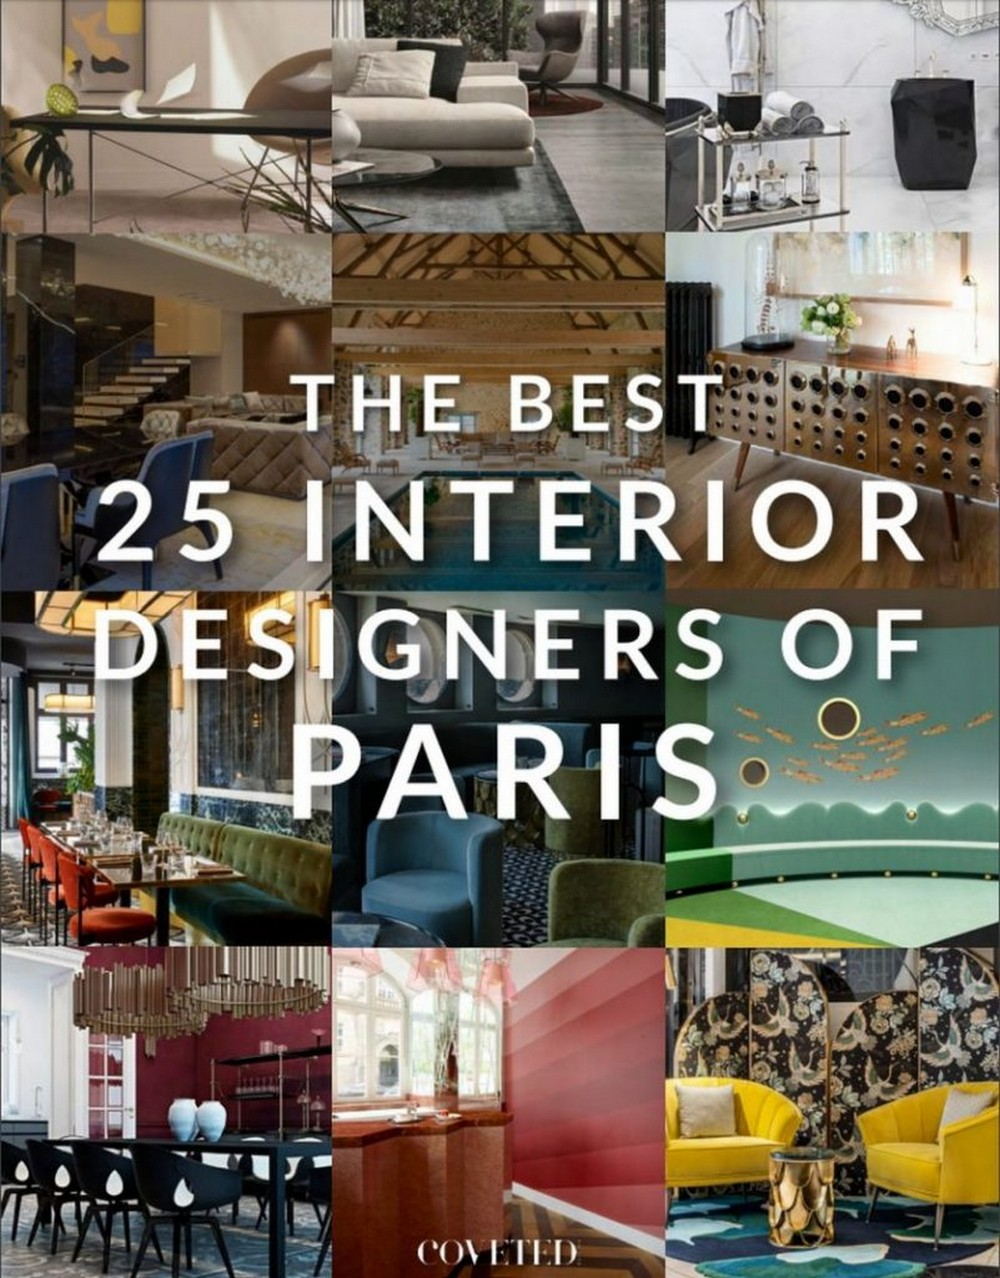 This Incredible Ebook Shows The 25 Best Interior Designers From France best interior designers This Incredible Ebook Shows The 25 Best Interior Designers From France This Incredible Ebook Shows The 25 Best Interior Designers From France 2